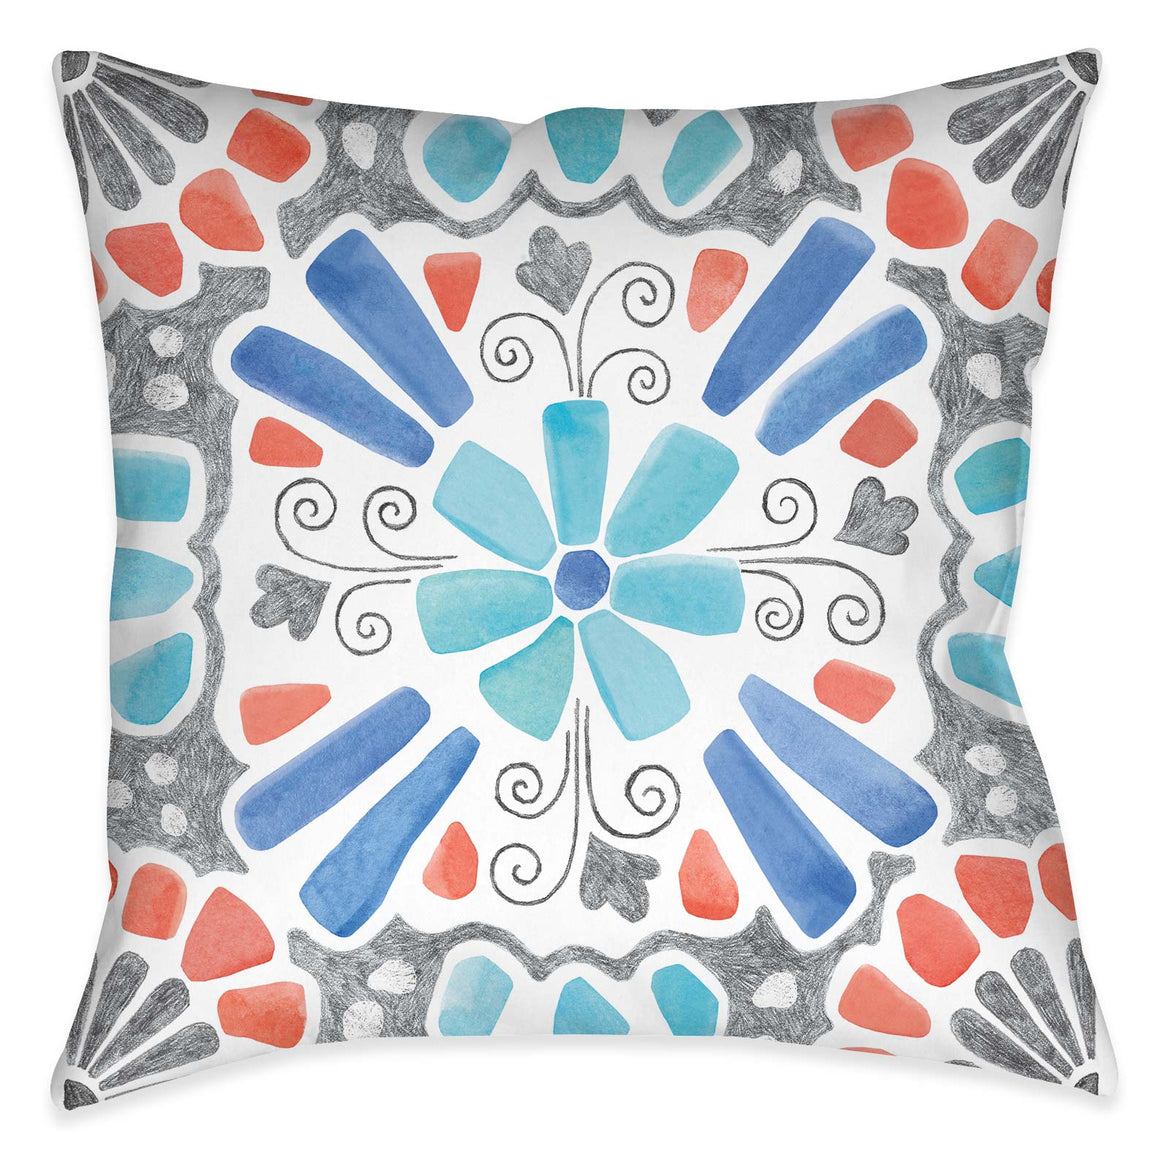 "The ""Coastal Mosaic III Indoor Decorative Pillow"" features a modern must-have mosaic design. The eclectic balance of coral, aqua and grey colors exposes its artistic rendering giving it a unique flare inspired by traditional mosaic tile designs."